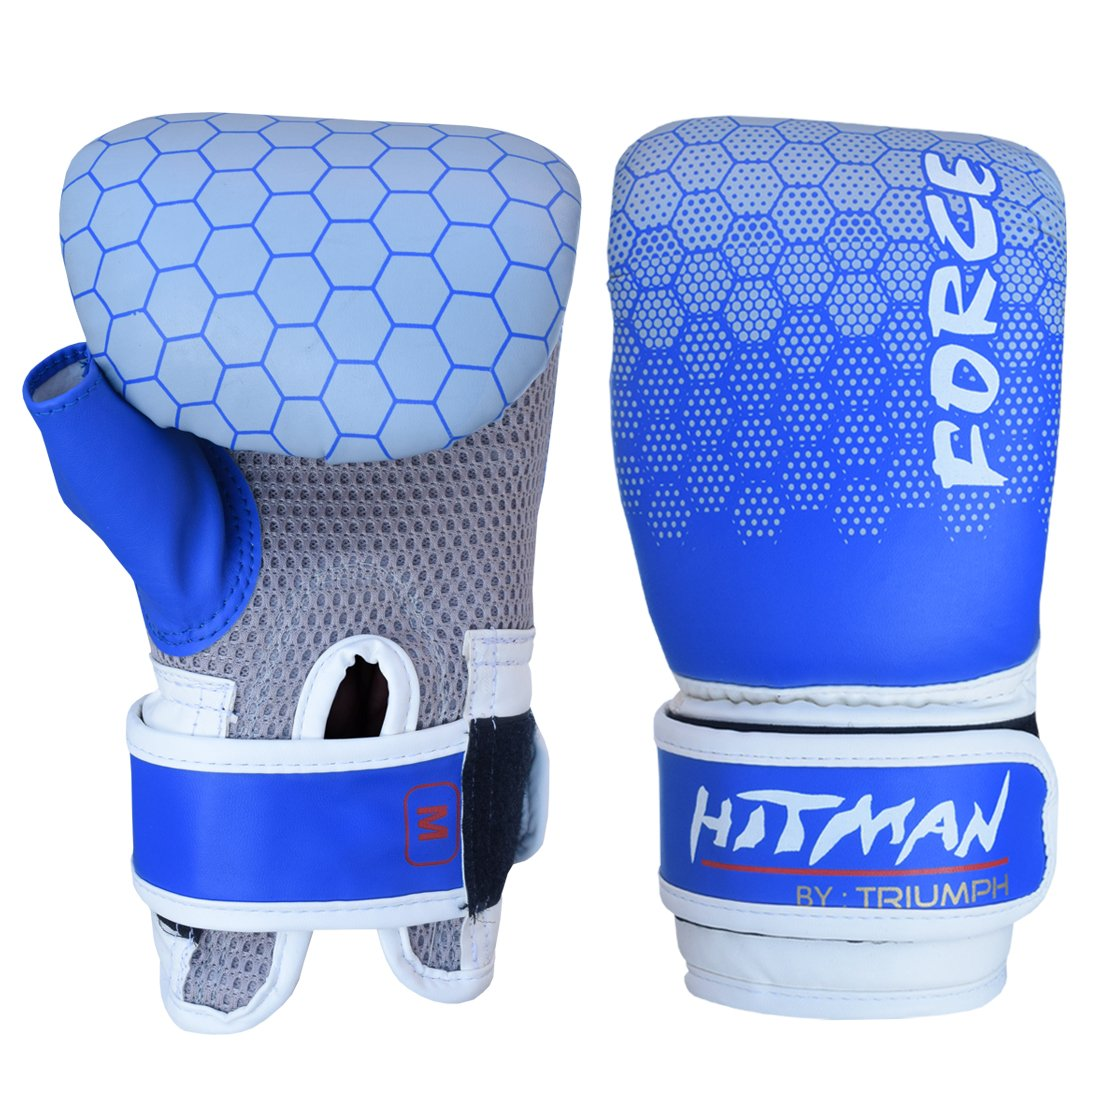 HITMAN Force Fight Gear Contender Hybrid Grappling Martial Arts Sparring Cage Fighting Mitts UFC Combat Training Half Thumb Punching Gloves Blue